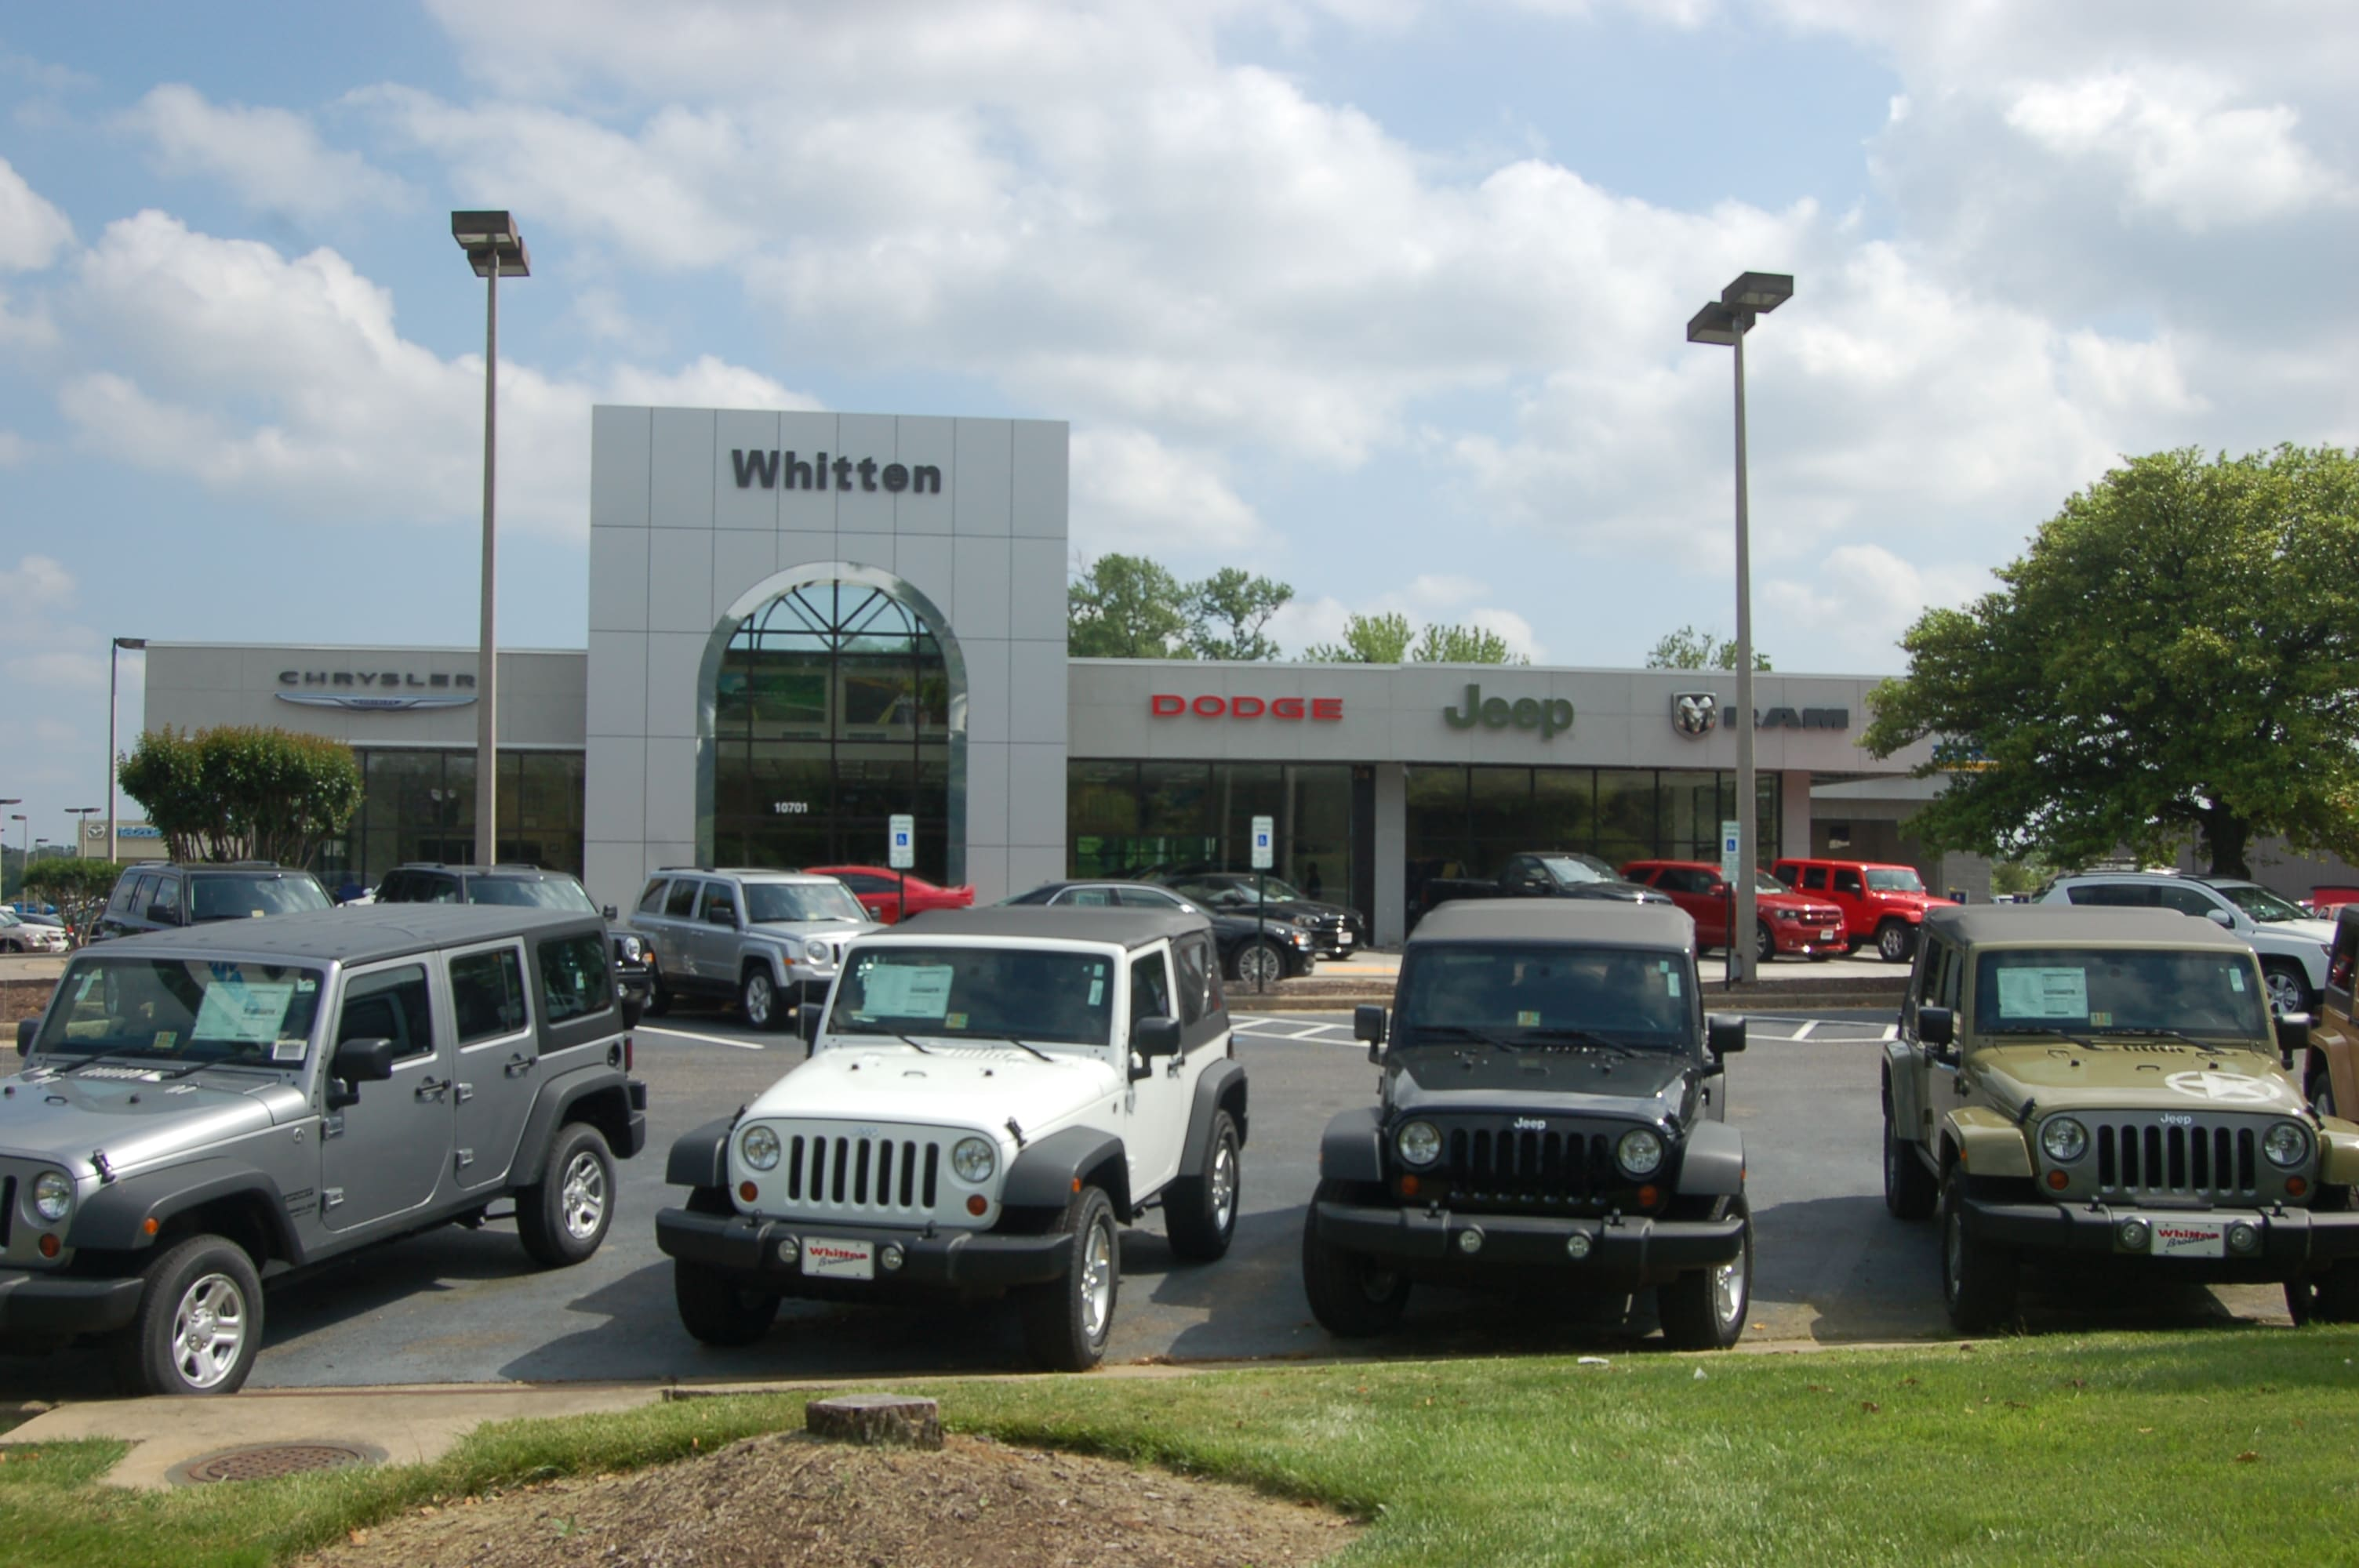 fca boulder dealers colo a they offered more open jeep pollard to if sell dealer alone dealership in jeeps